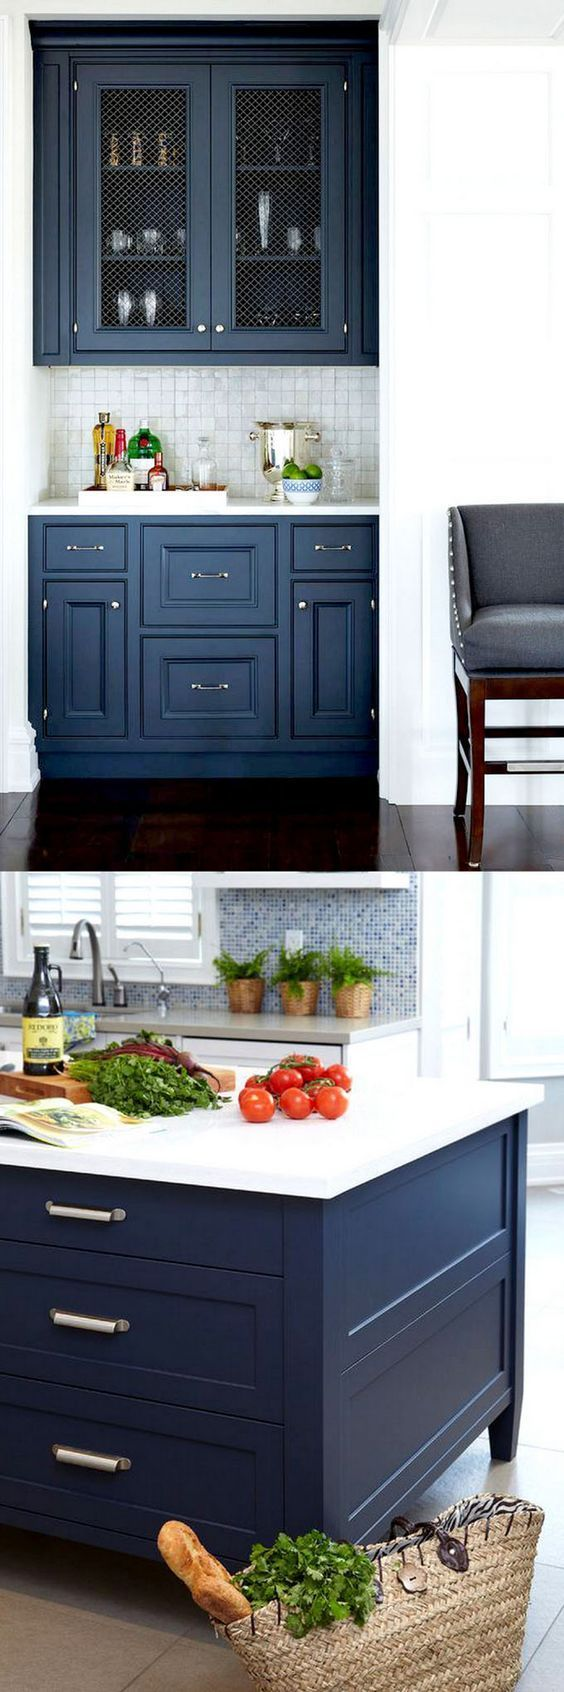 27+ Kitchen Countertop Ideas to Make Your Kitchen Stand Out